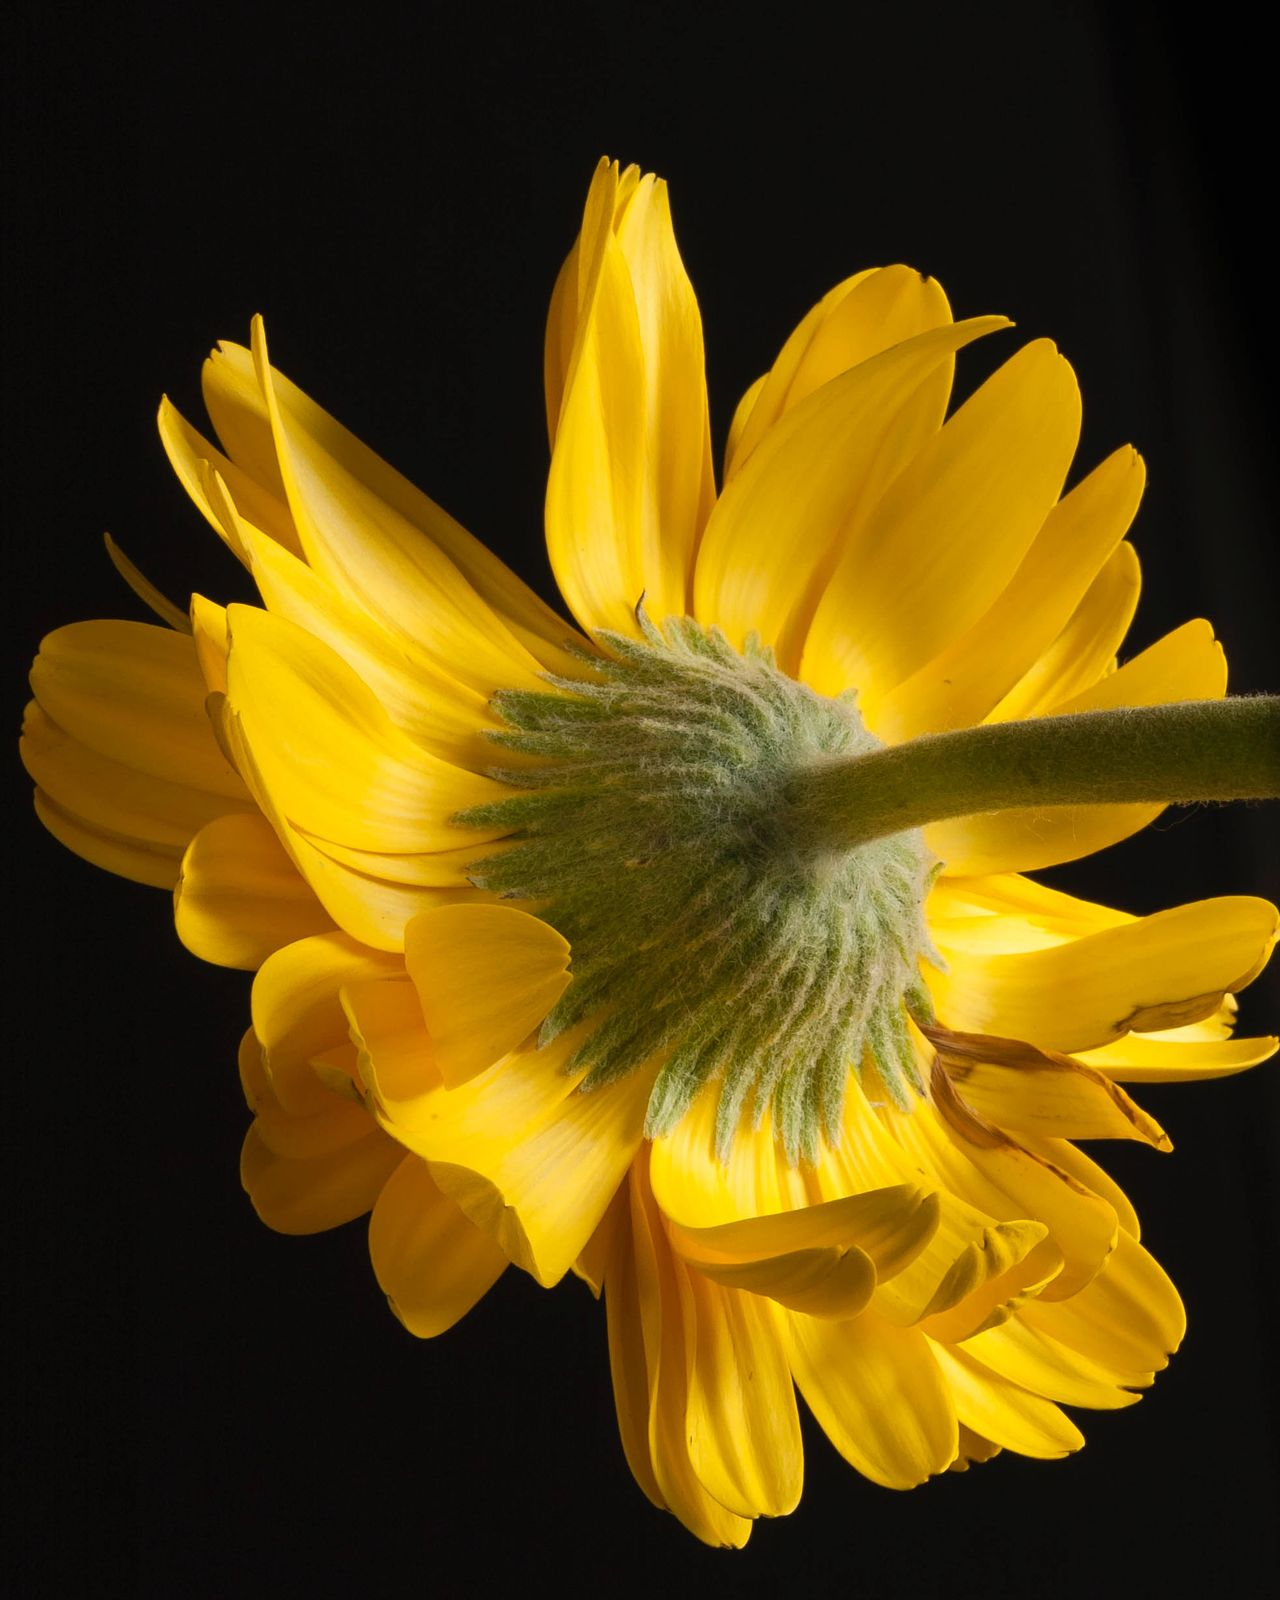 Sometimes turning things over gives a fresh perspective Beauty In Nature Black Background Close-up Copy Space Cut Out Flower Flower Head Fragility Fresh Perspective Freshness Nature No People Petal Single Flower Studio Shot Yellow